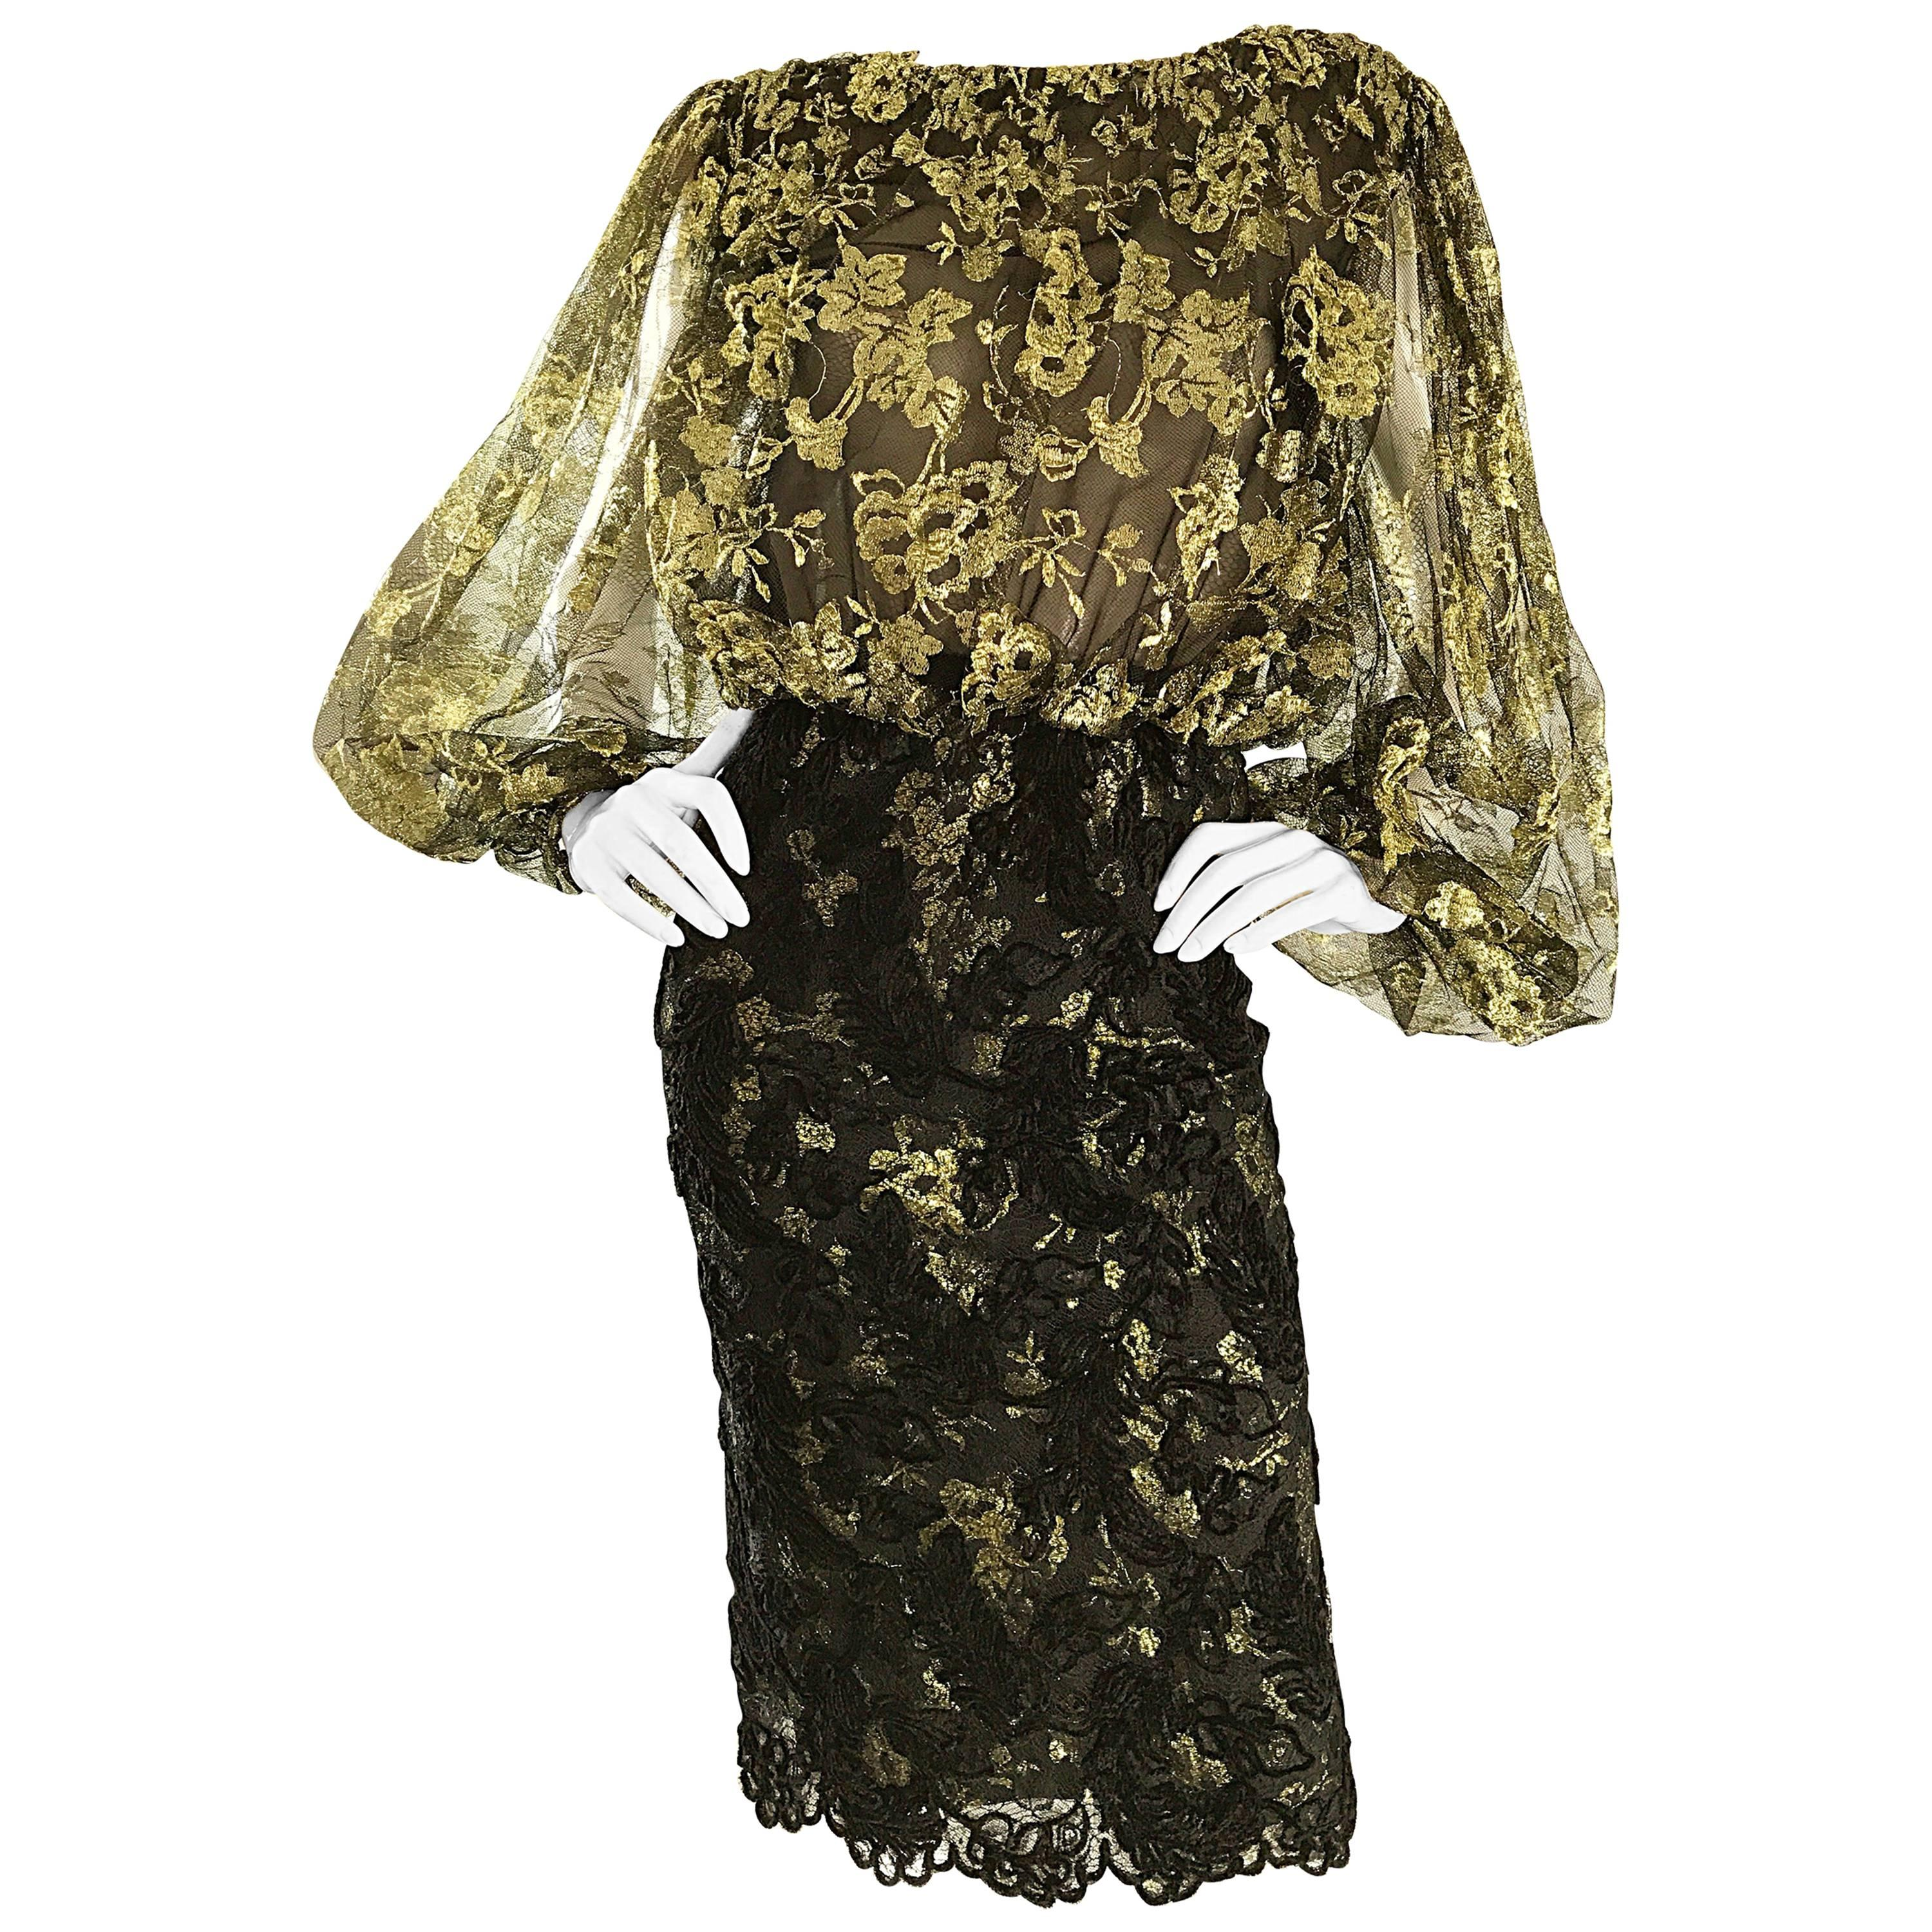 Bill Blass Vintage Gold and Black Size 6 Chantilly Lace Cocktail Dress